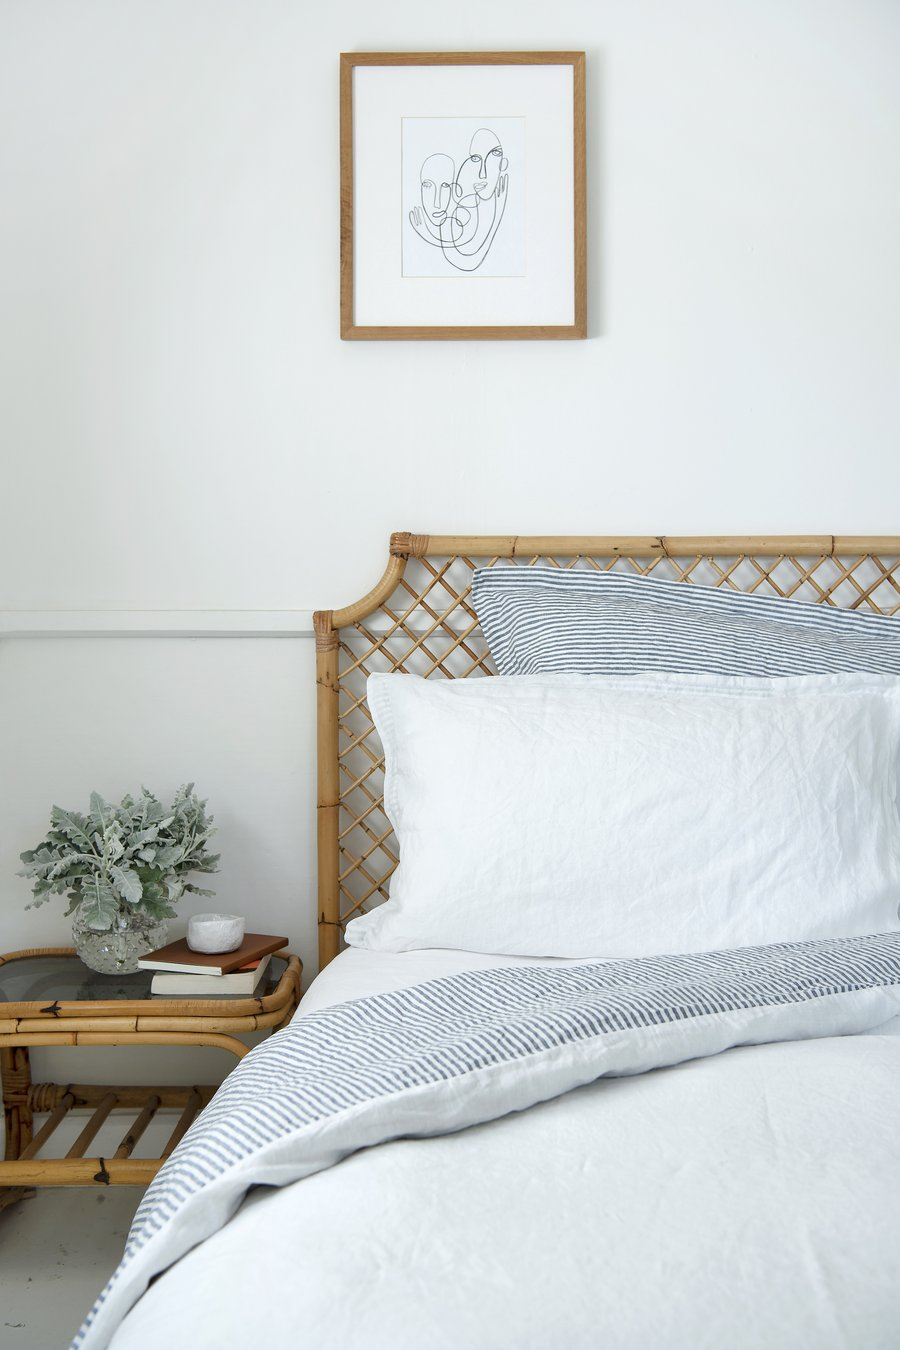 Bedtonic_navy_ticking_stripes_milk_edited_900x.jpg